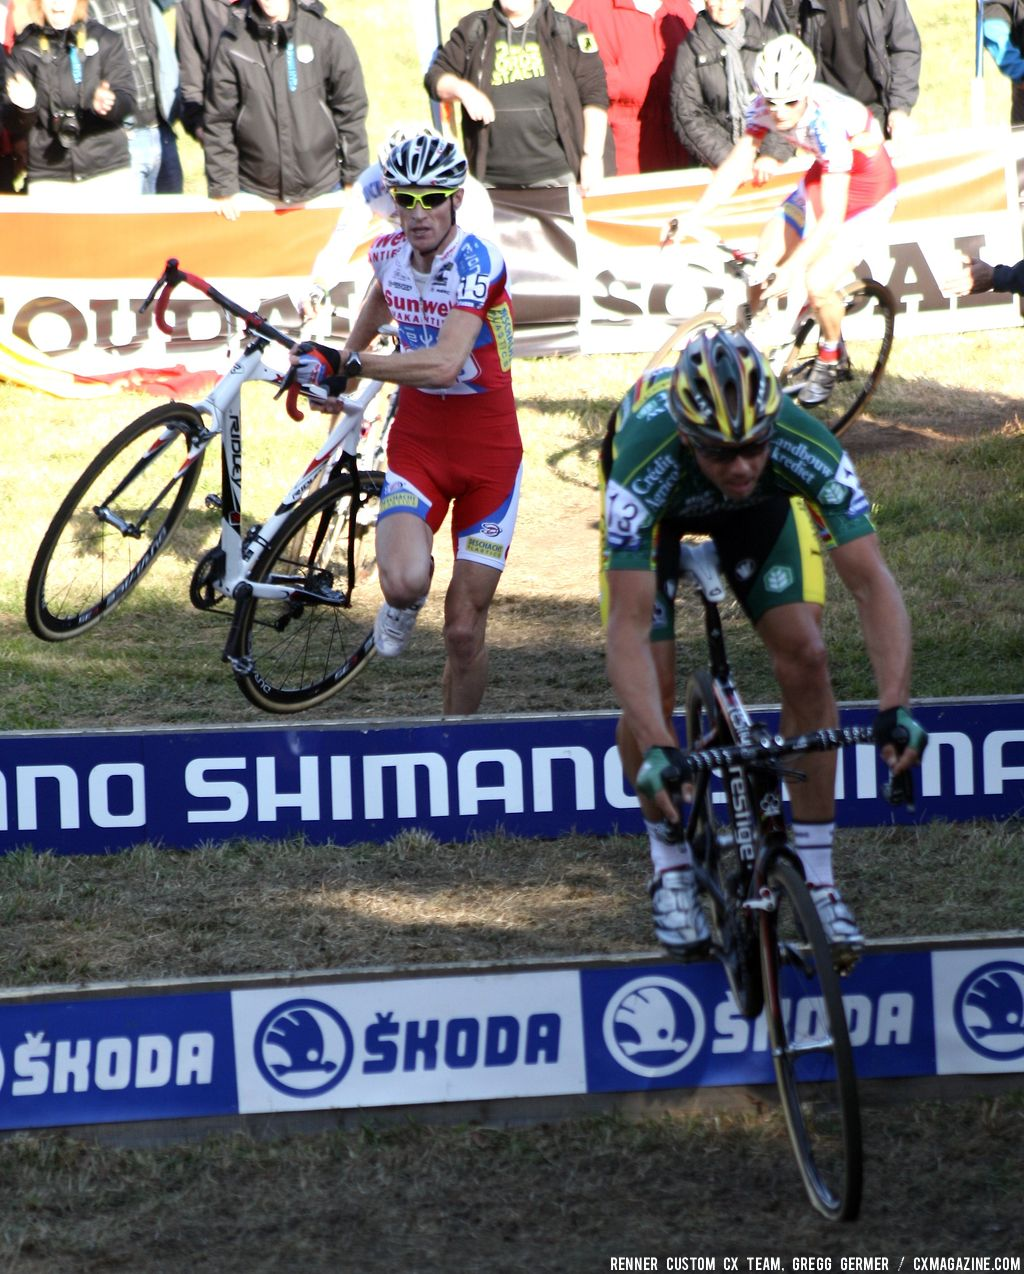 Men\'s Chase Group bunnyhops the barriers. © Renner Custom CX Team, Gregg Germer